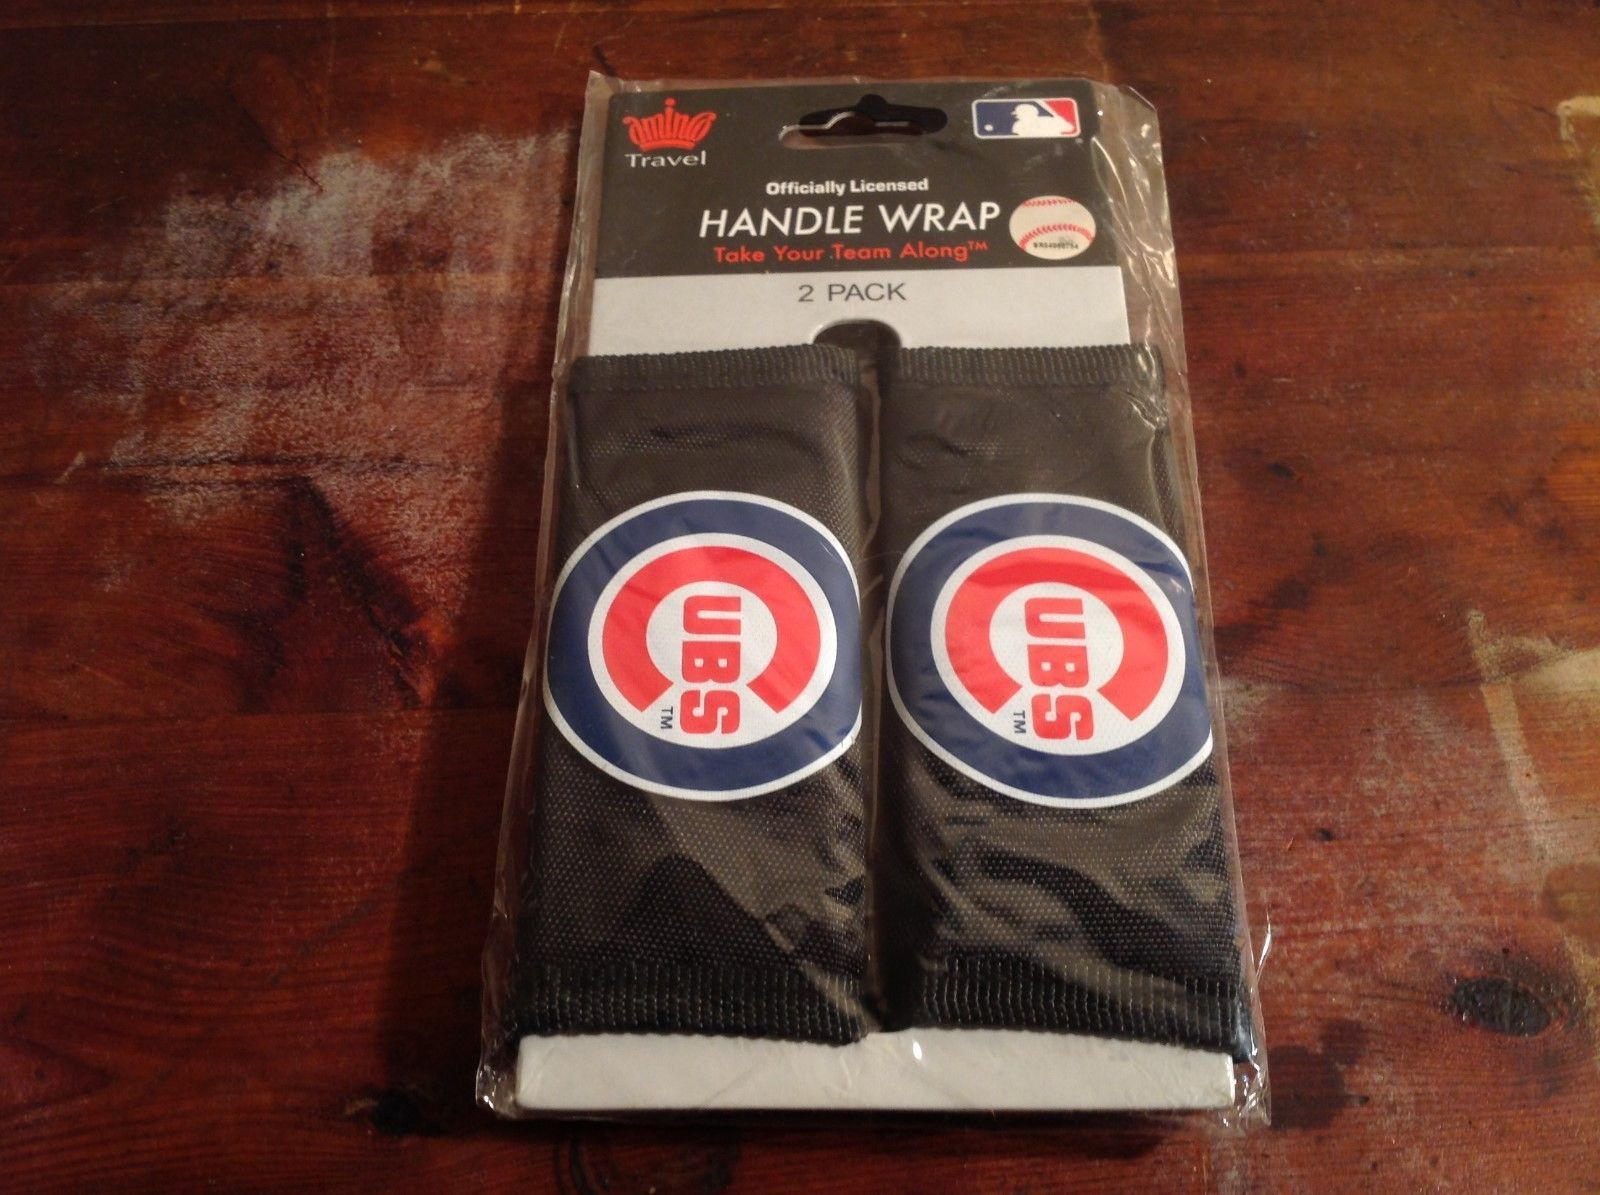 NEW Officially Licensed CUBS Two Pack Handle Wrap Travel Accessory